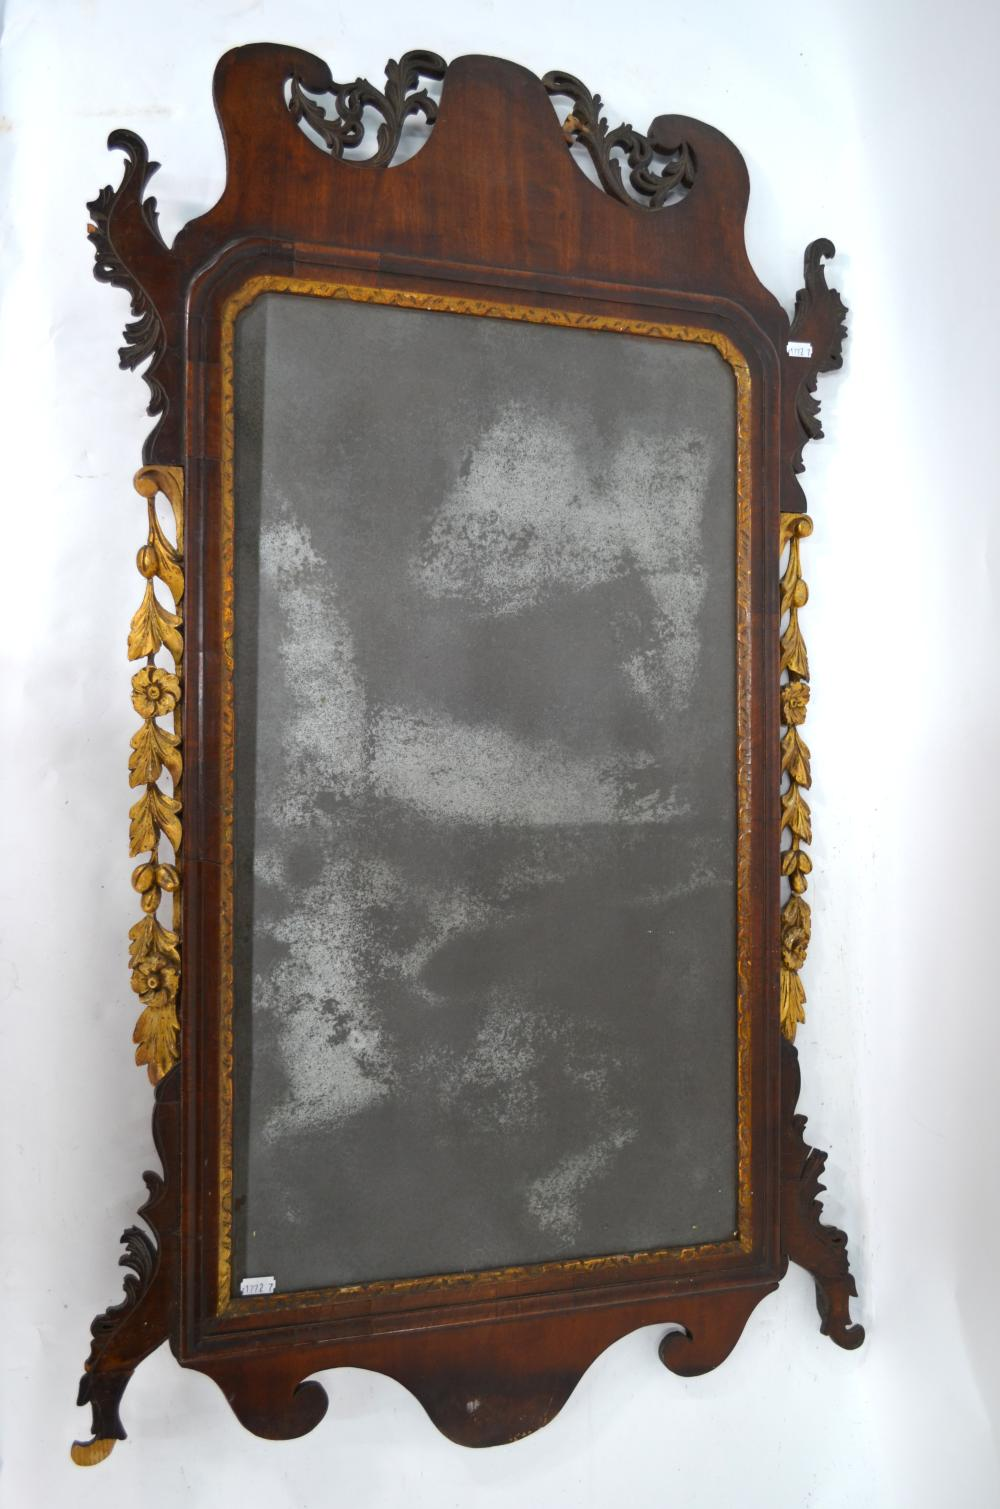 An 18th century mahogany fret cut and parcel gilt adorned pier glass